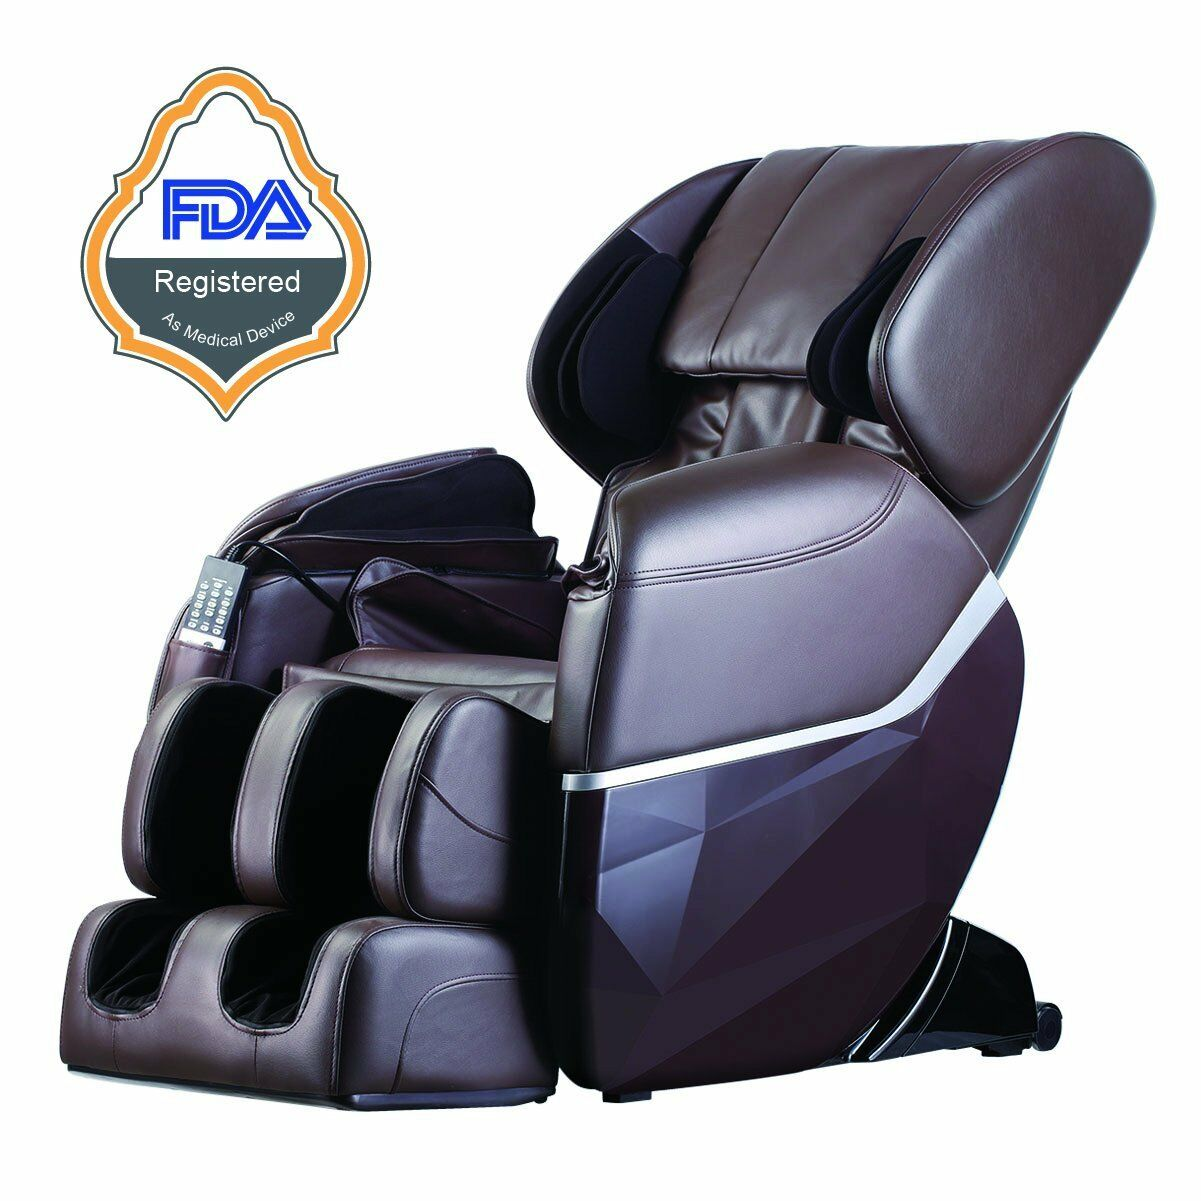 New Electric Full Body Shiatsu Massage Chair Recliner Zero Gravity w/Heat 77 Brown